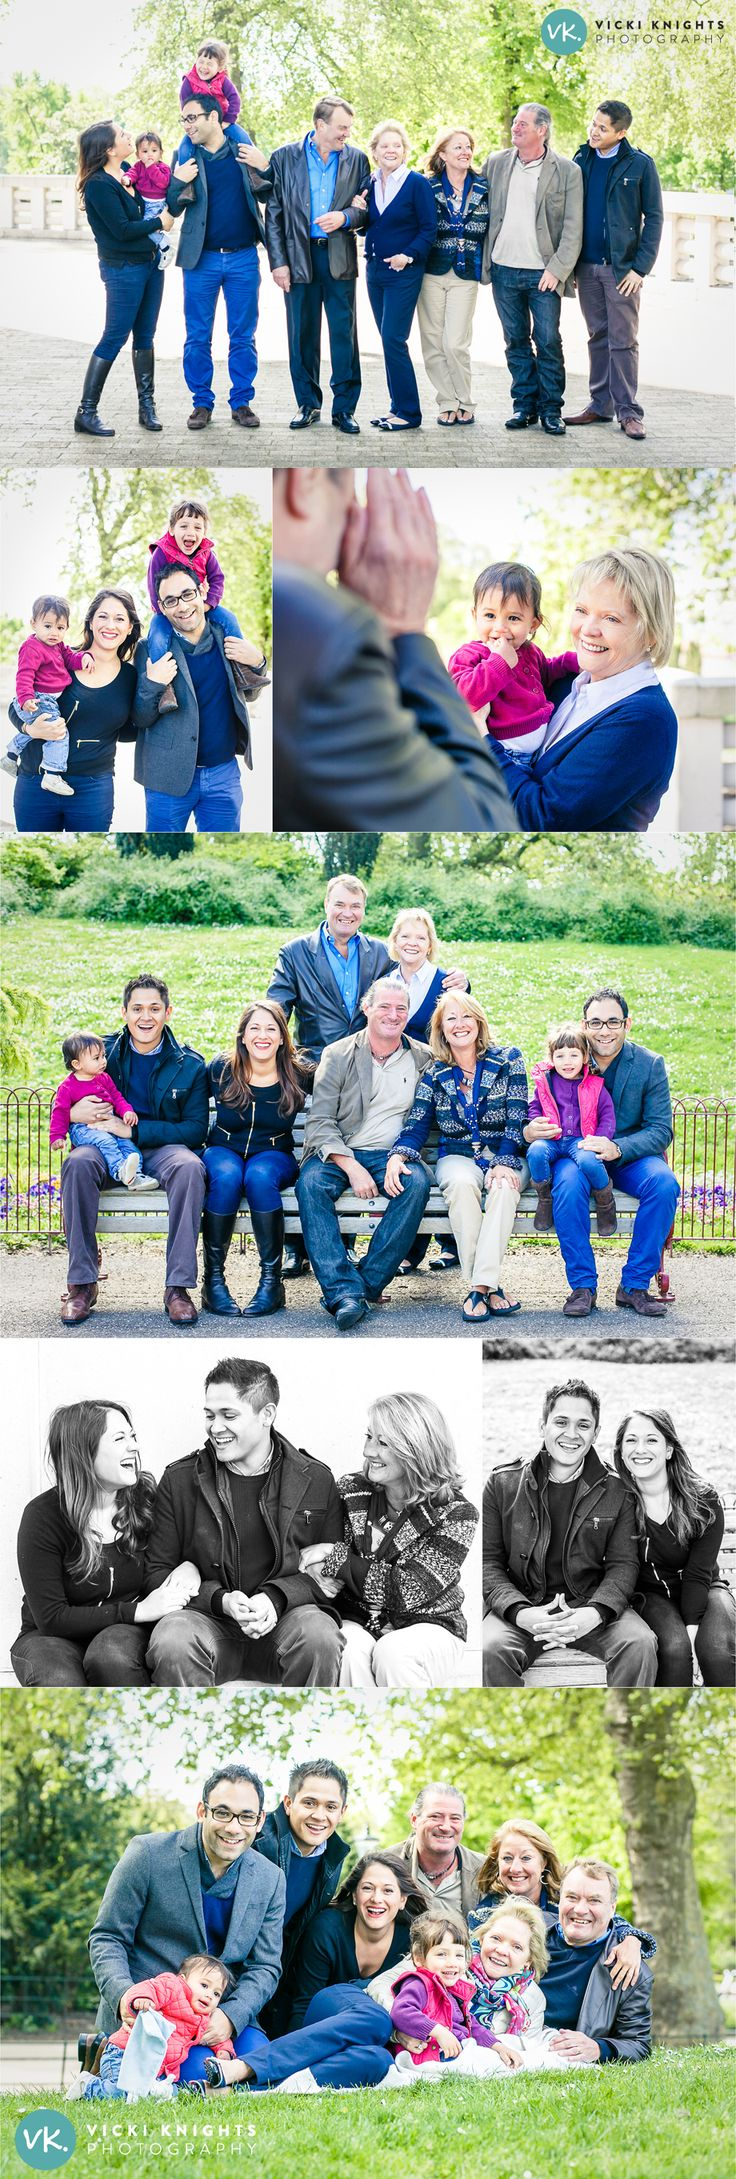 Big family photo shoot poses | Vicki Knights Photography